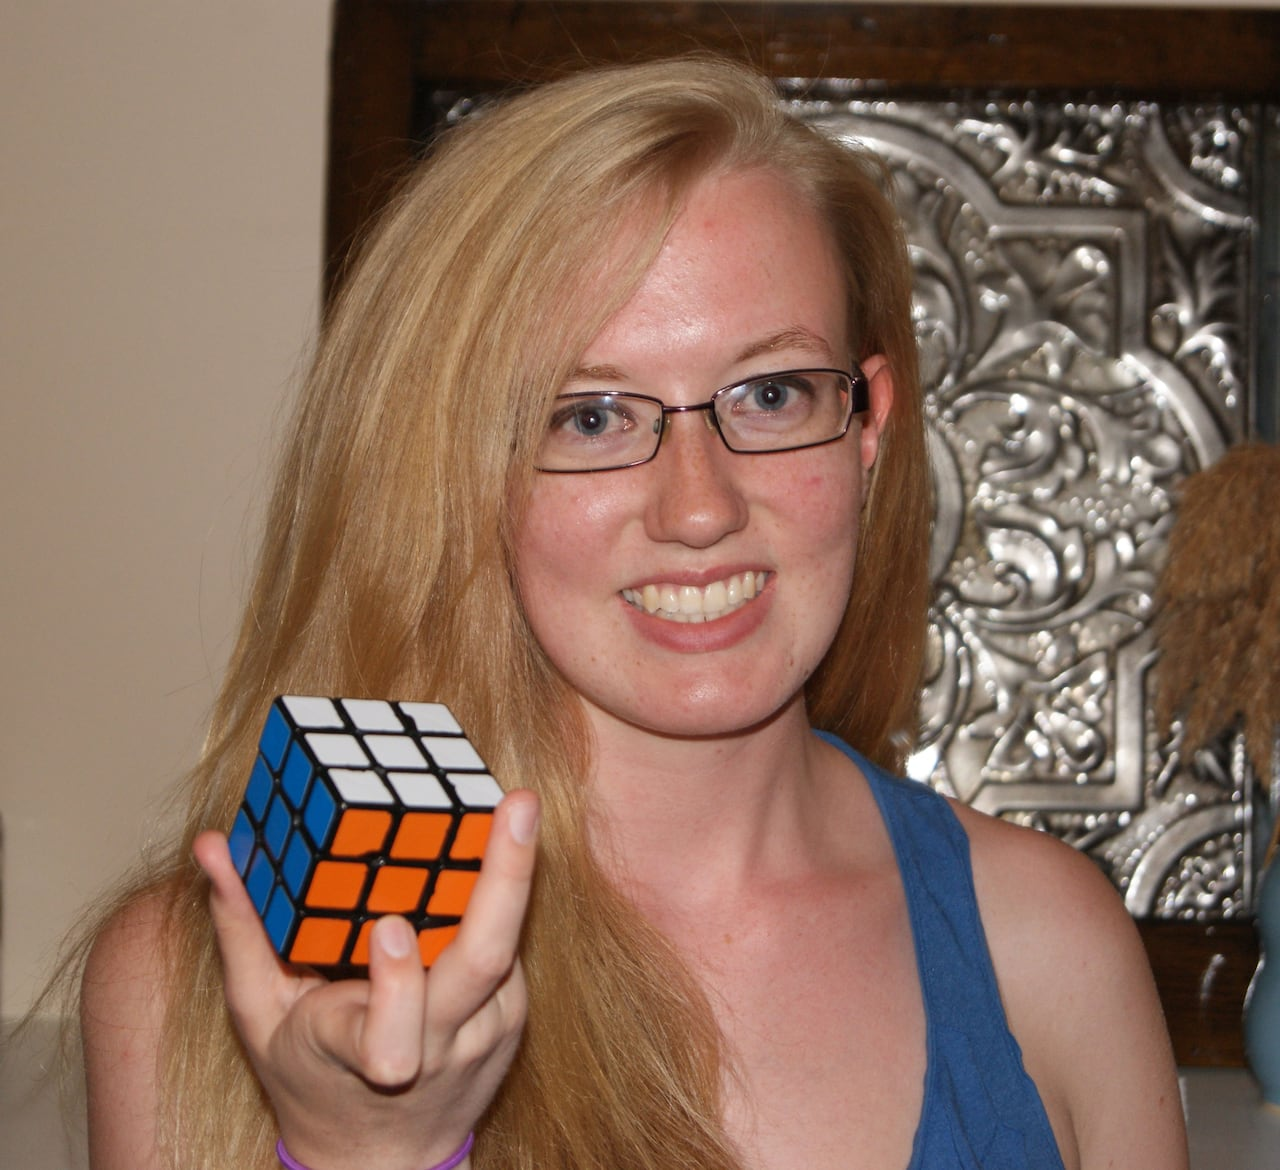 Rubik's Cube Montreal Lack Of Female Competition For Guelph Rubik S Cube Puzzler Cbc News